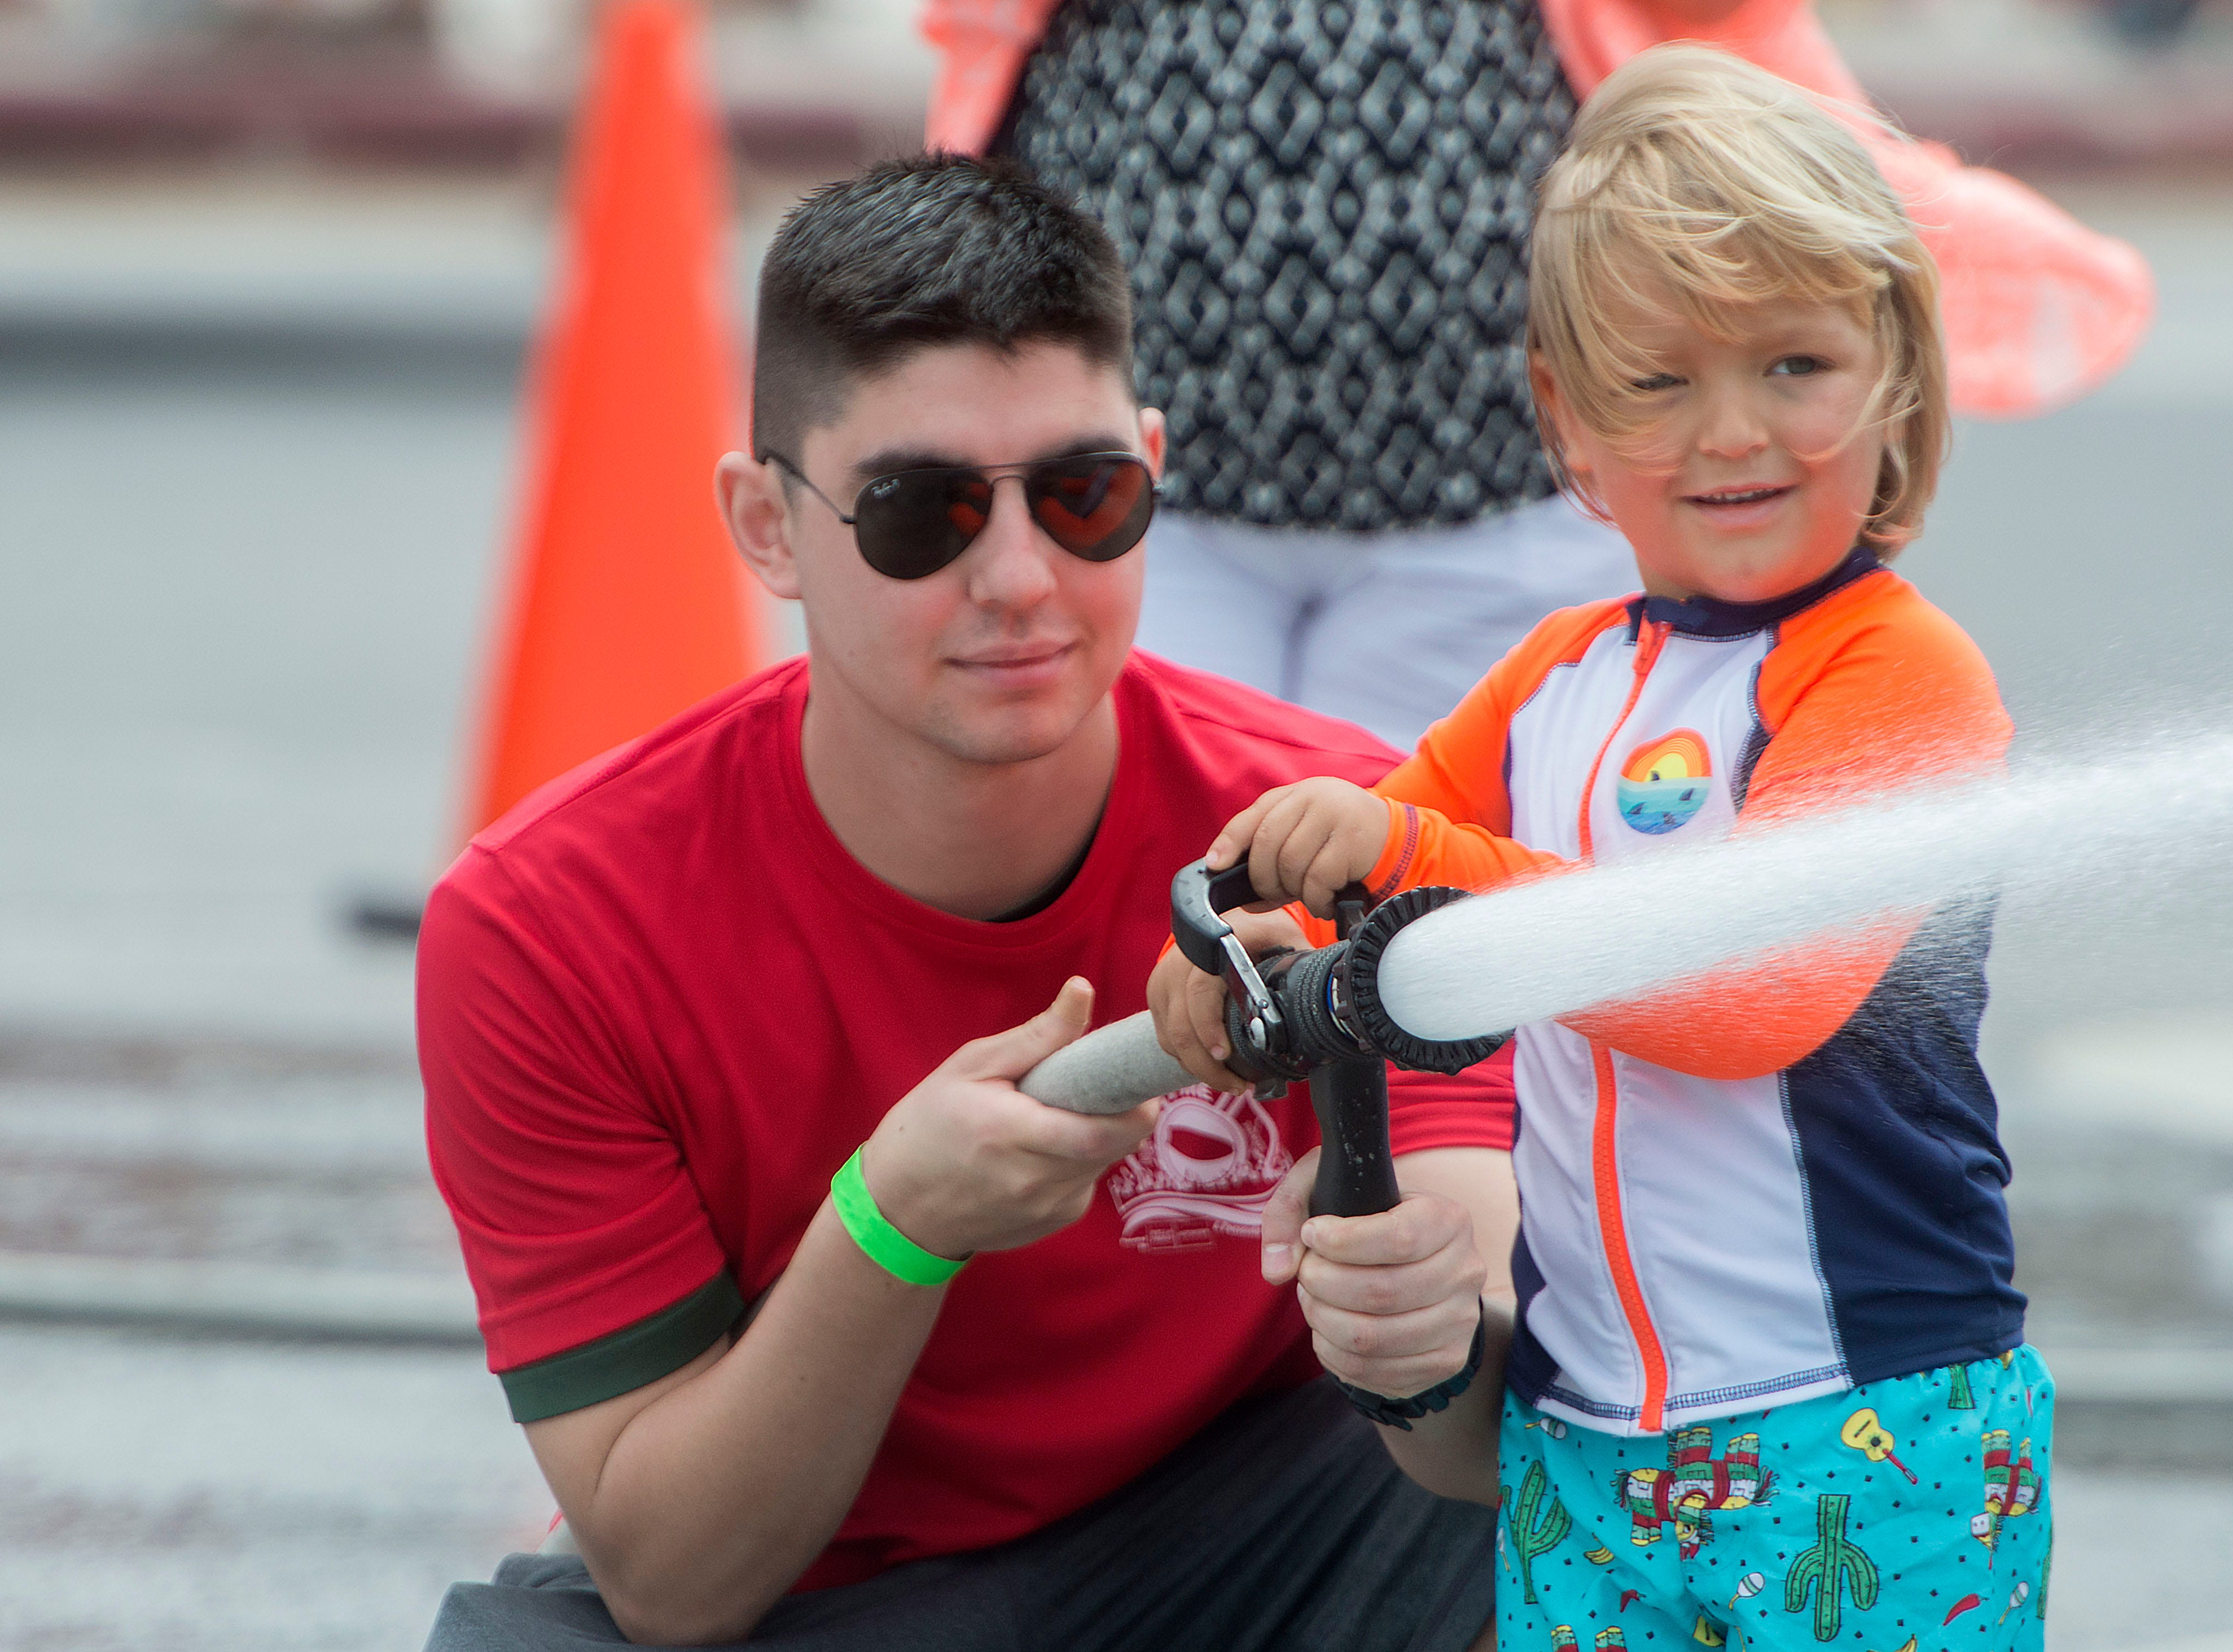 Kids play firefighters during the fifth annual Pensacola Beach Firefighters Challenge. The event tested the strength, agility, teamwork, and skills of firefighters as well as provided a fun, family friendly event for participants and the public.